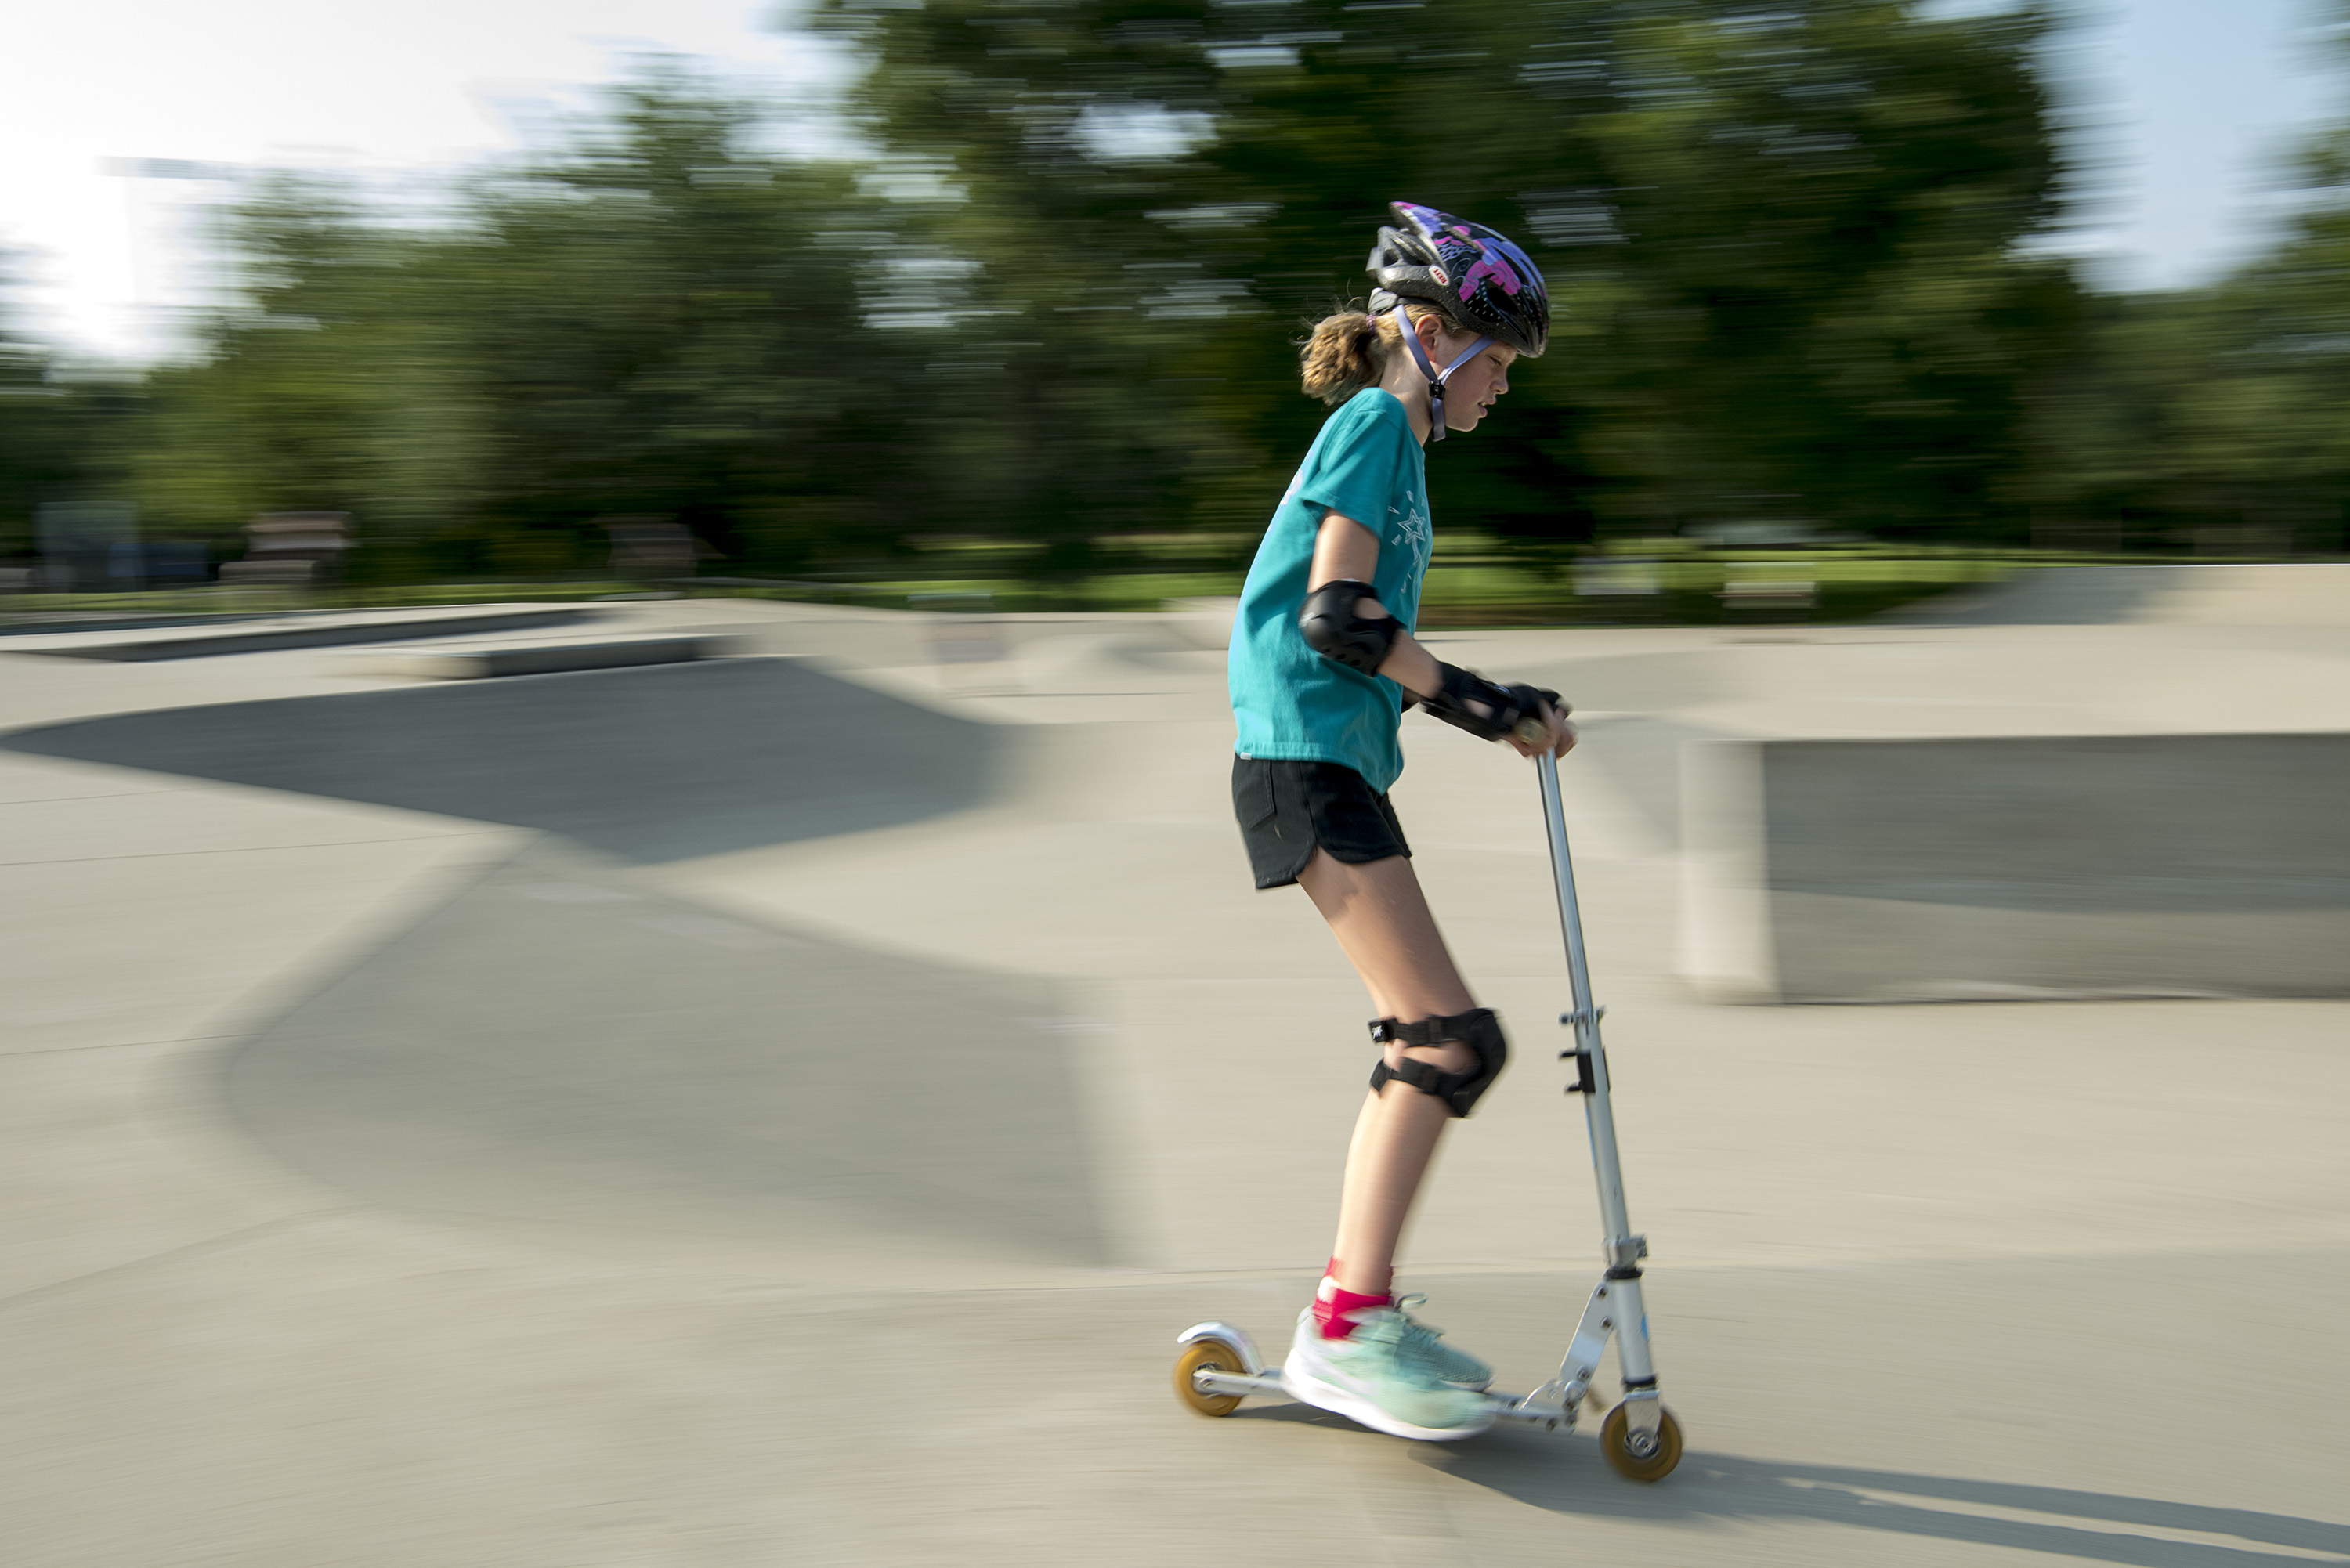 Sampling of central Ohio skateparks: Build confidence on wheels at innovative, concrete courses